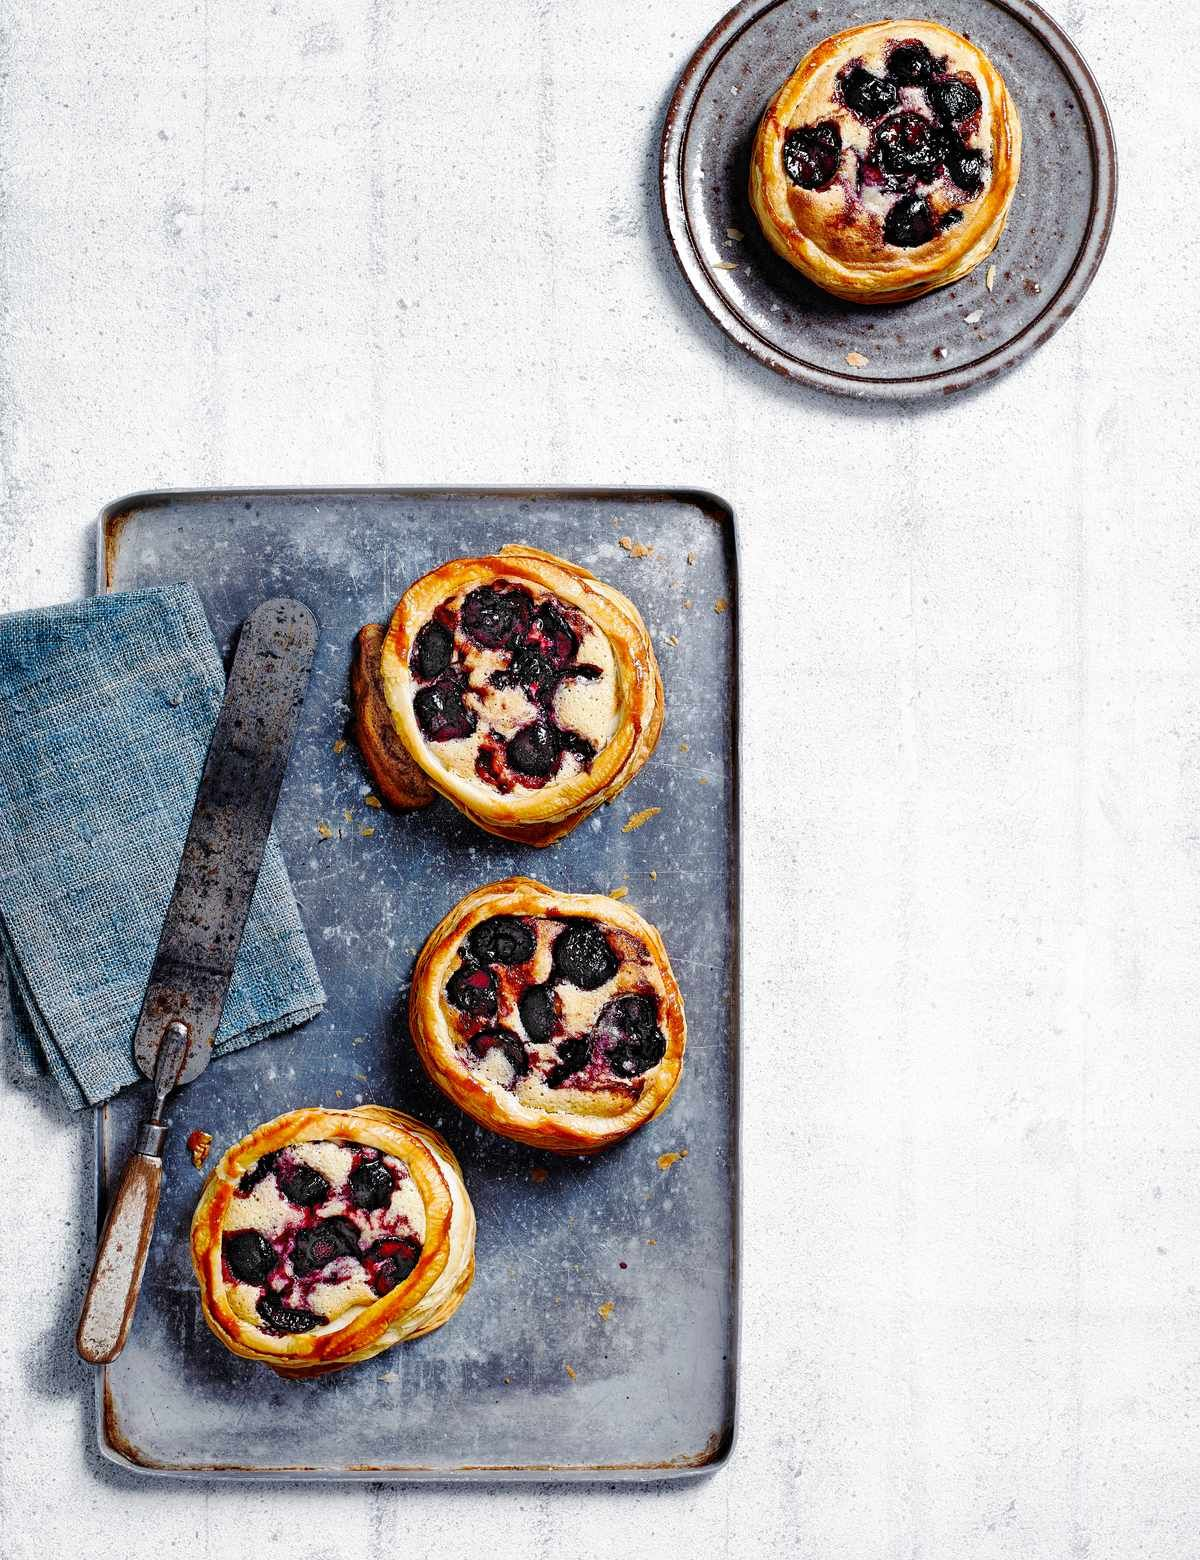 Almond Frangipane Recipe With Cherries Check Out Our Galettes Whole Black And Cherry